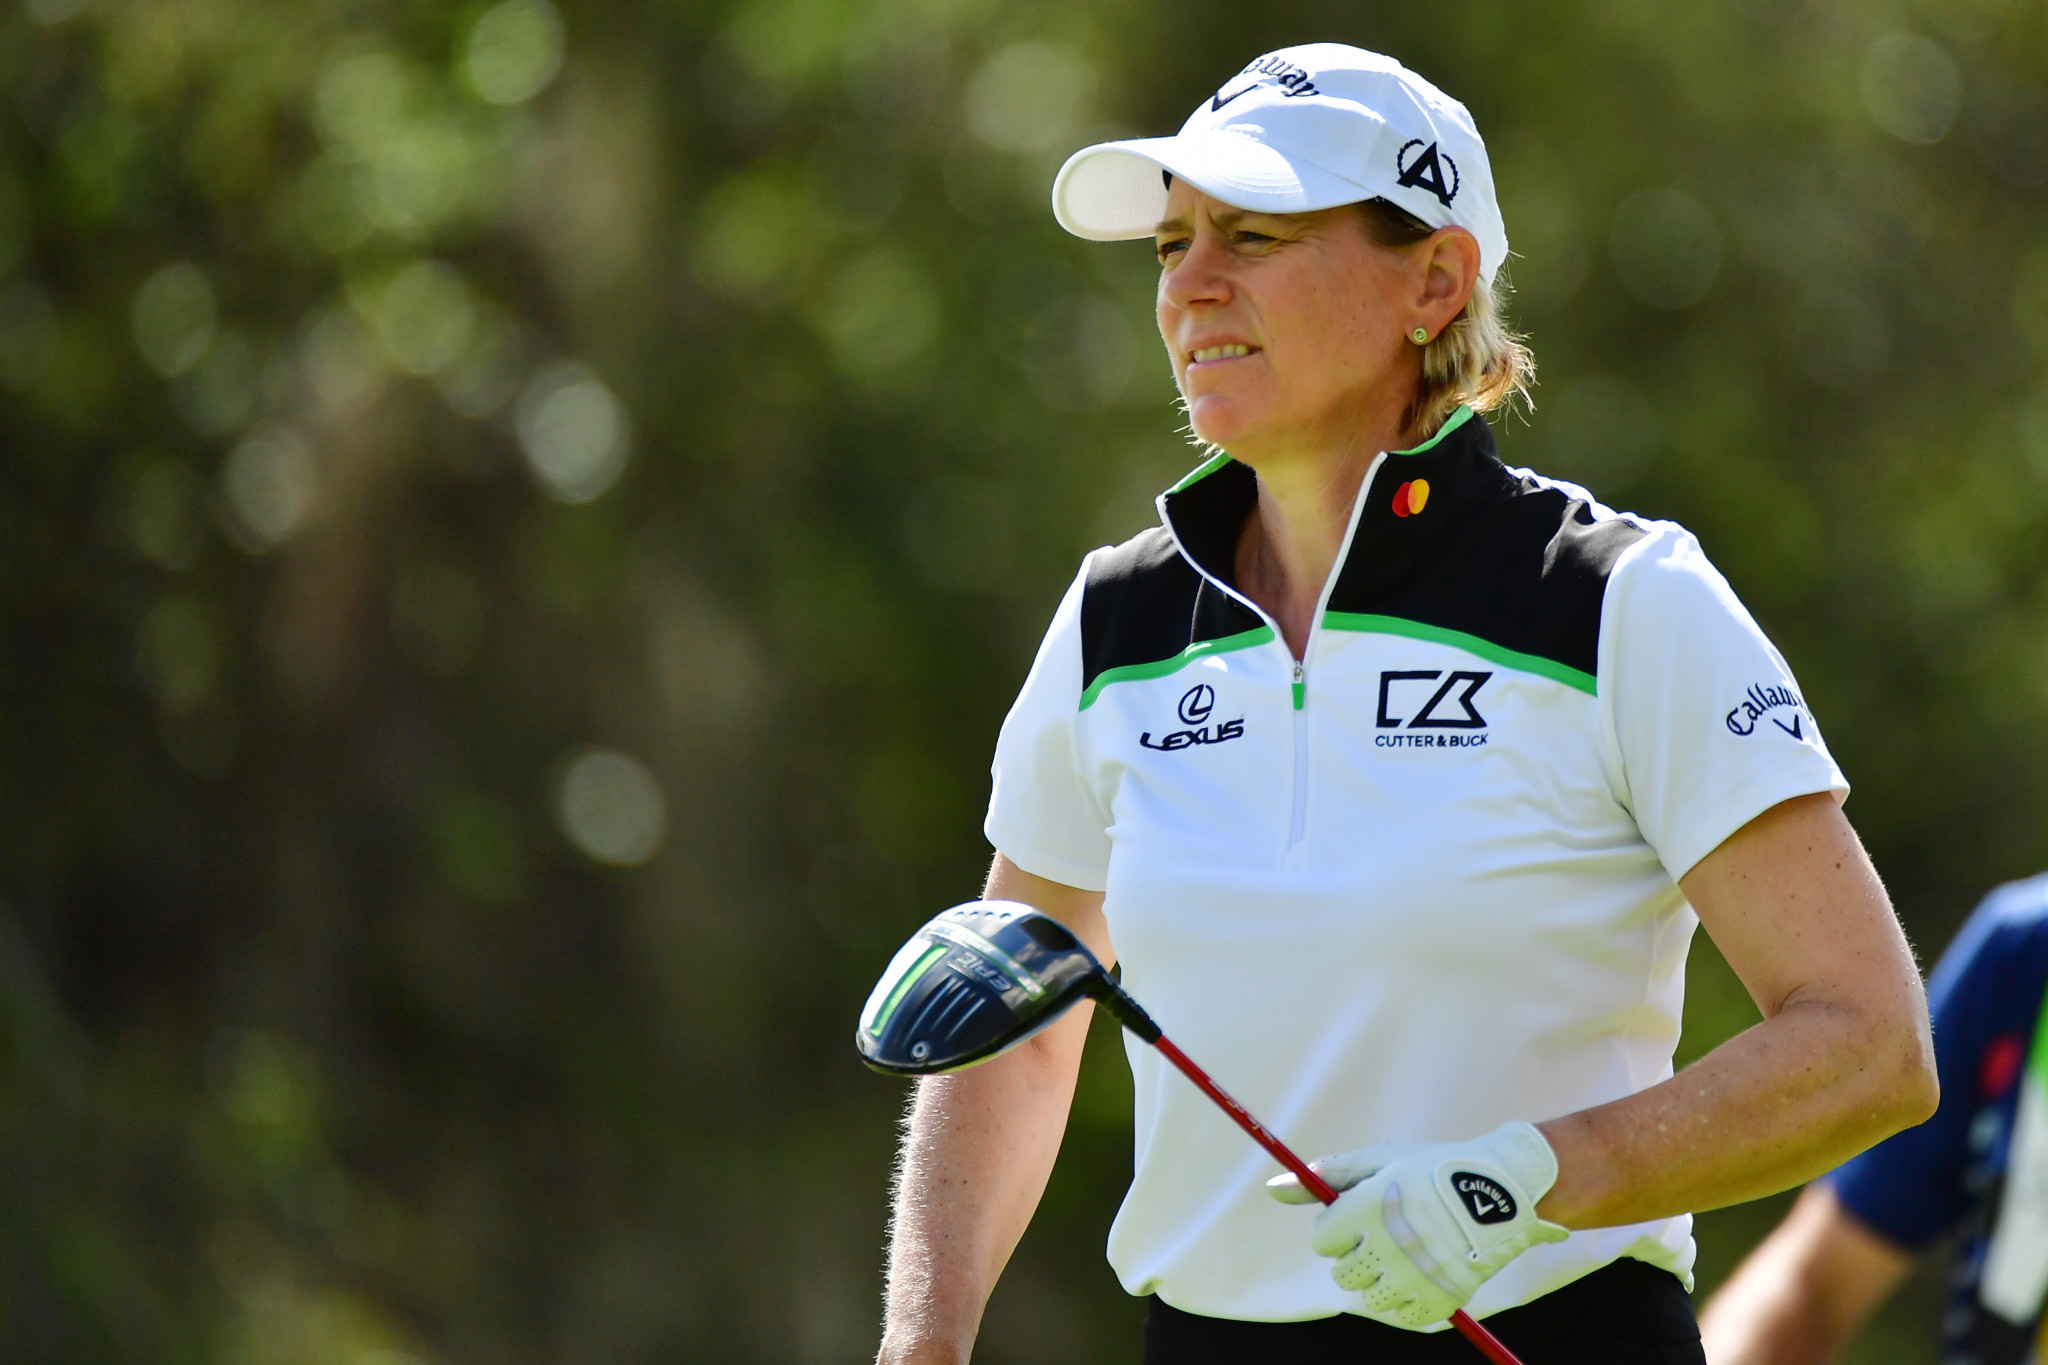 Annika Sörenstam, the IGF President, would likely miss the start of the Tokyo 2020 Olympic golf tournaments ©Getty Images